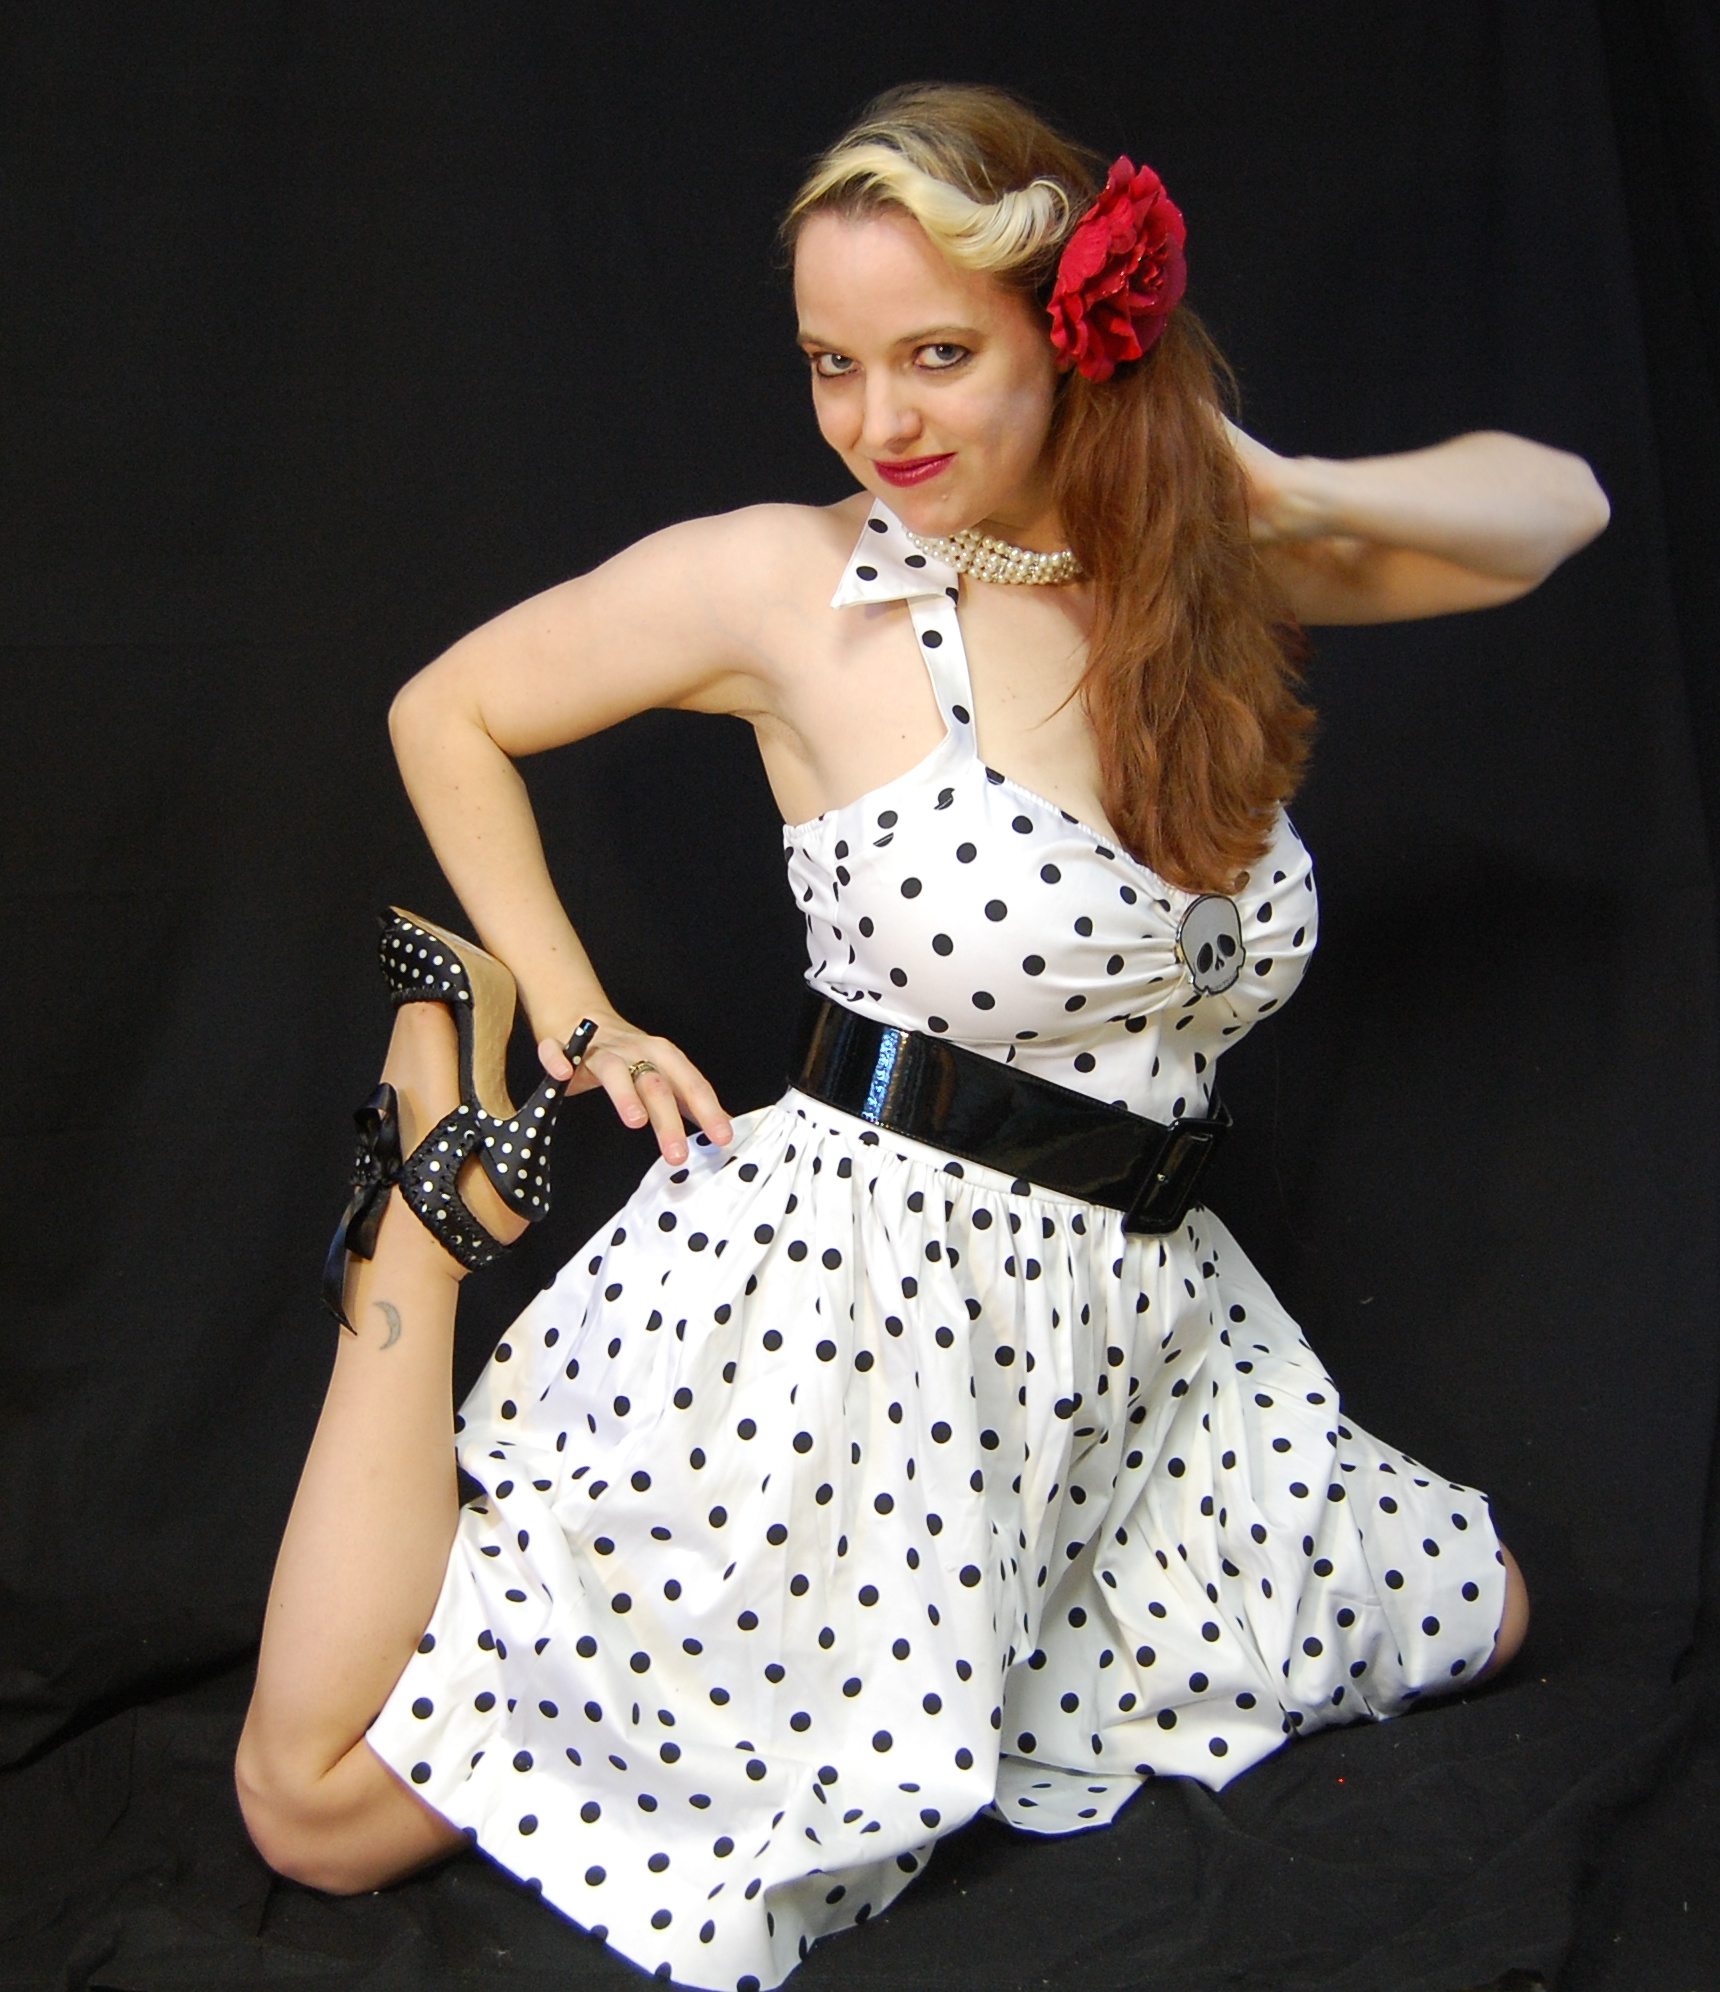 2010 Fife pinup white dress 0679